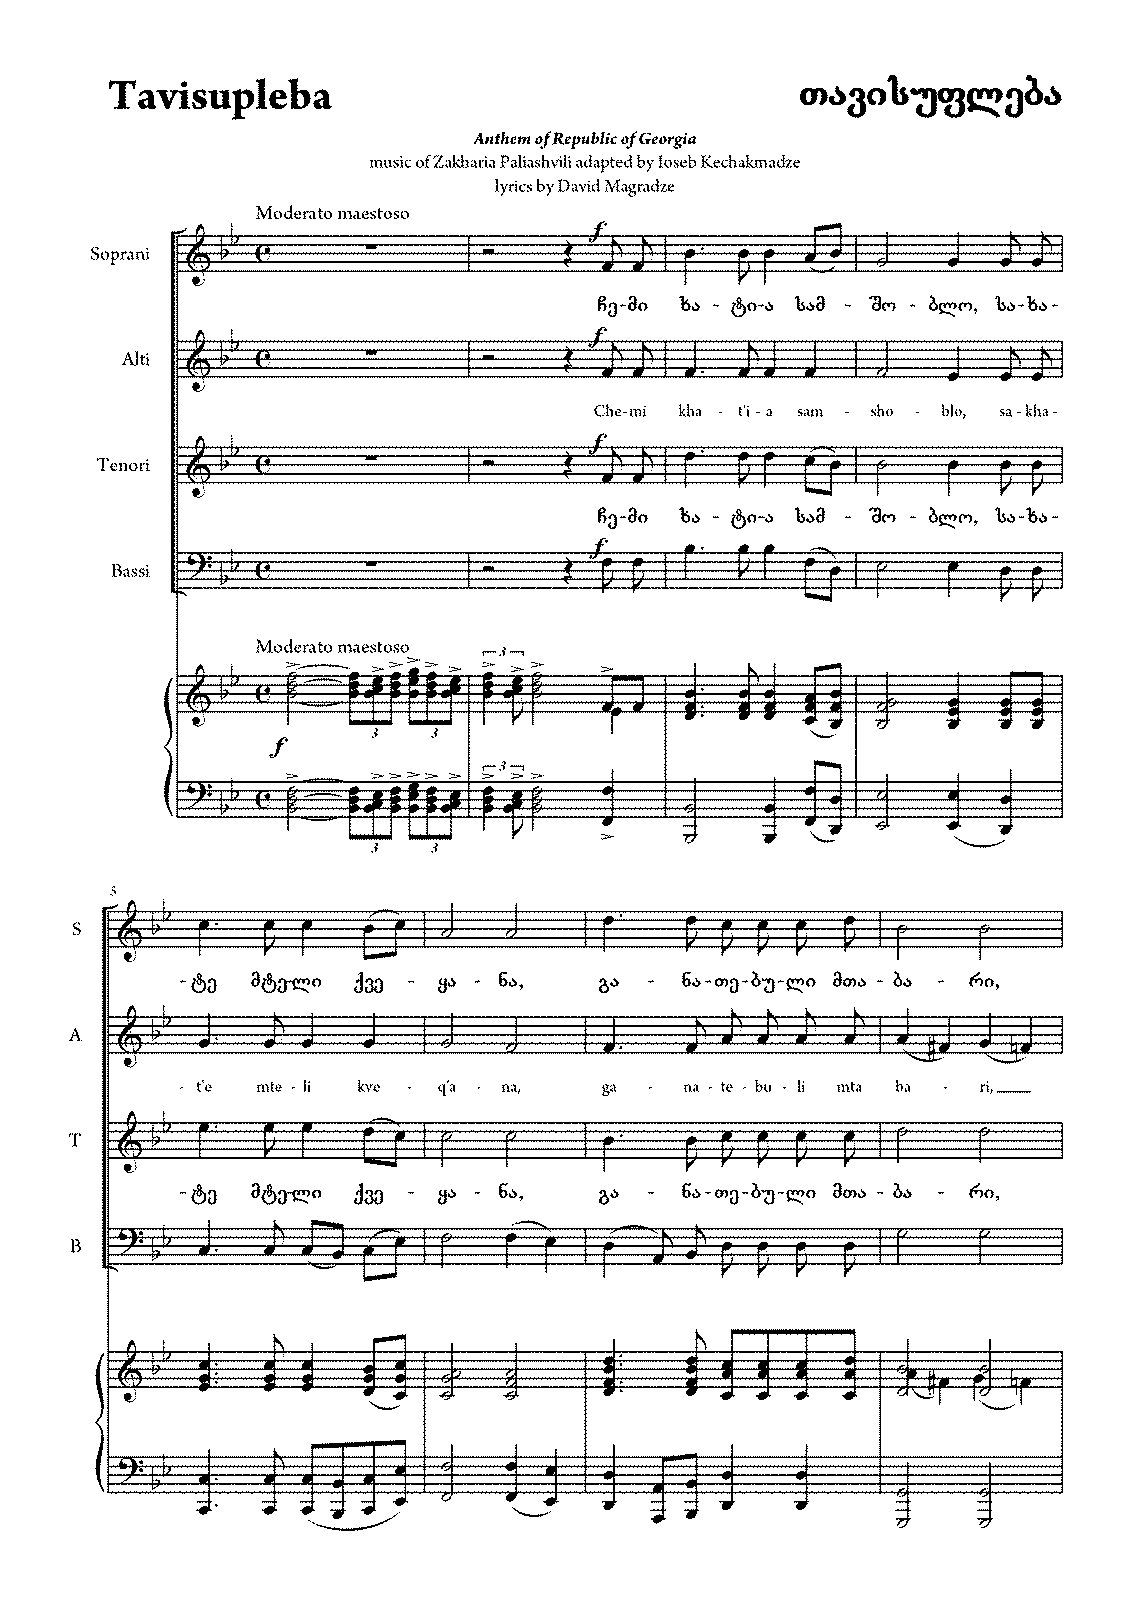 PMLP119338-Anthem of Georgia - Tavisupleba.pdf